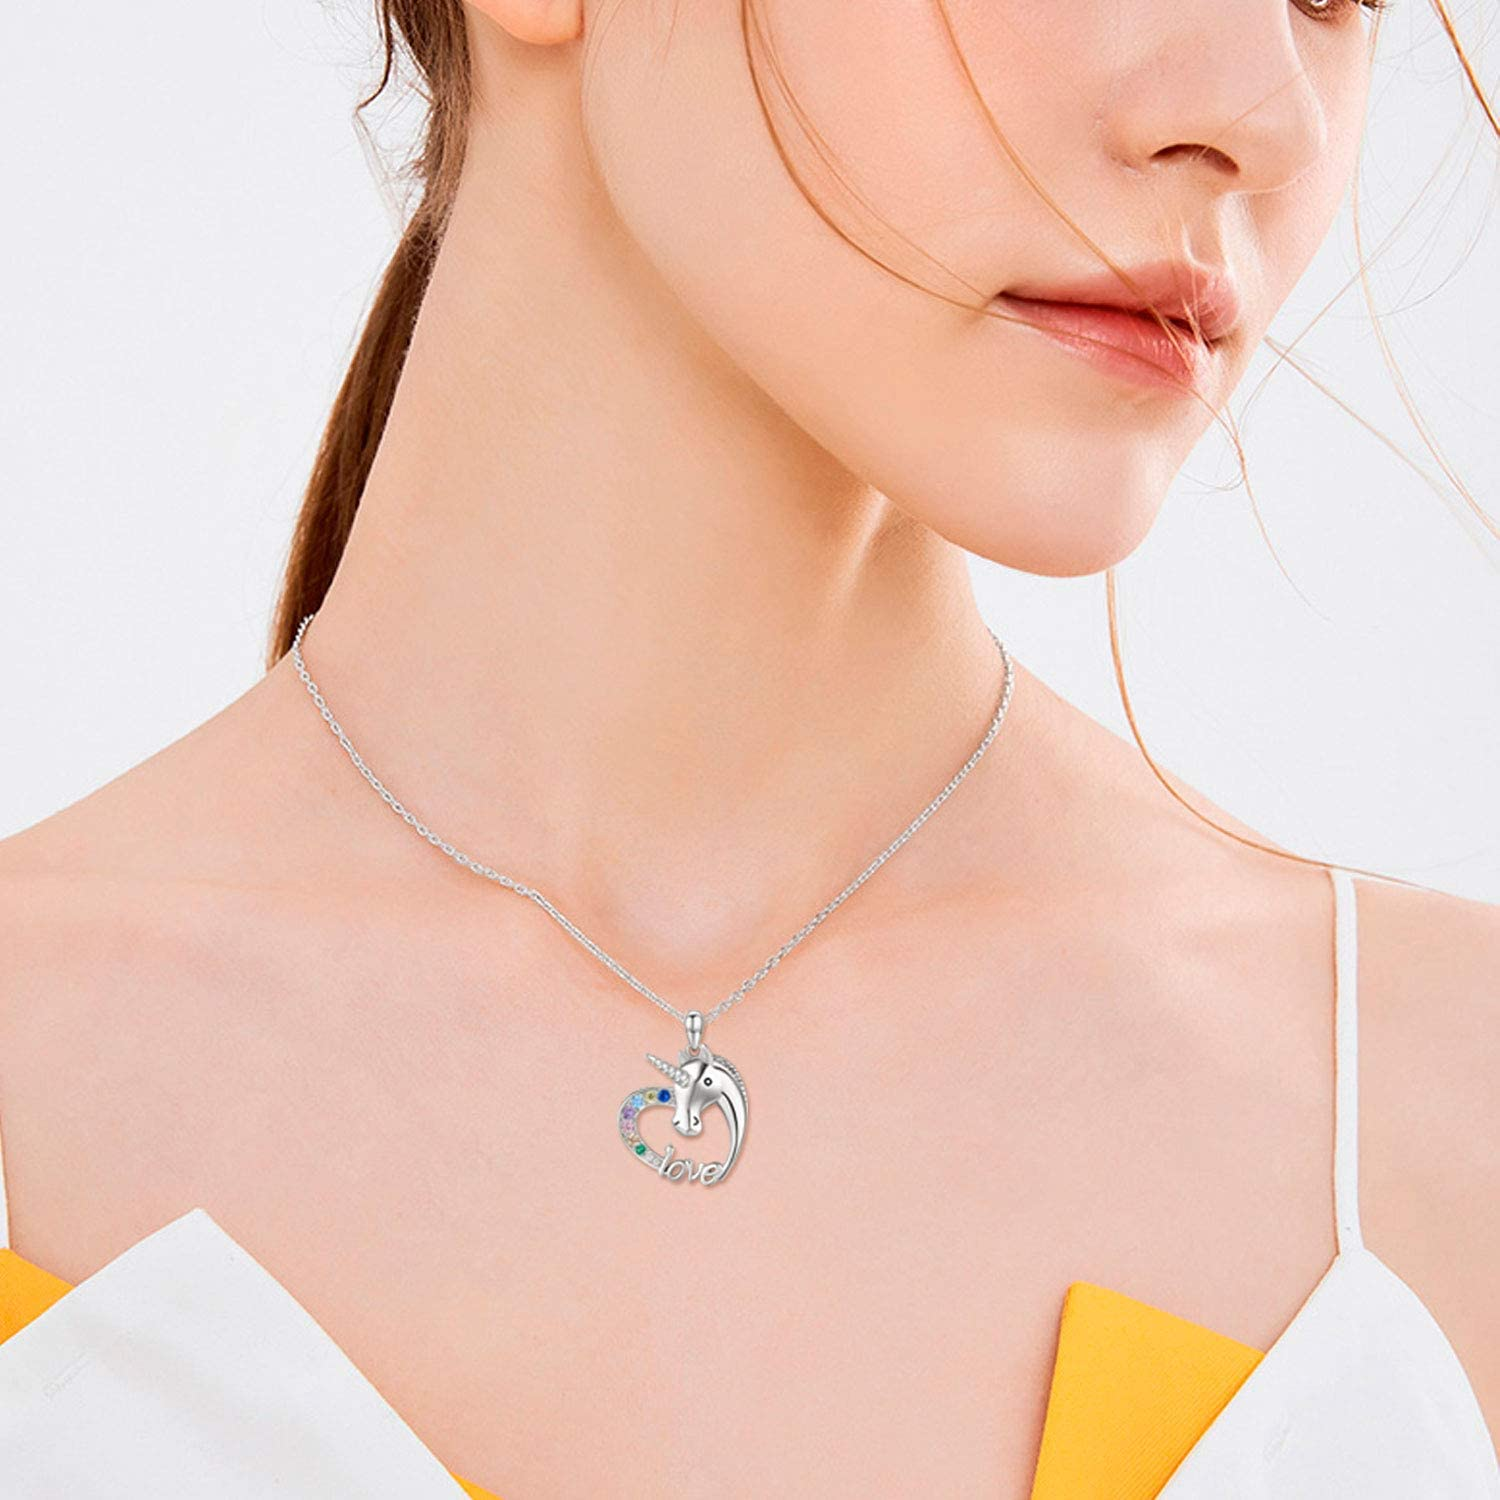 Unicorn Necklace S925 Sterling Silver Mom Gifts Unicorn Jewelry for Teens Women